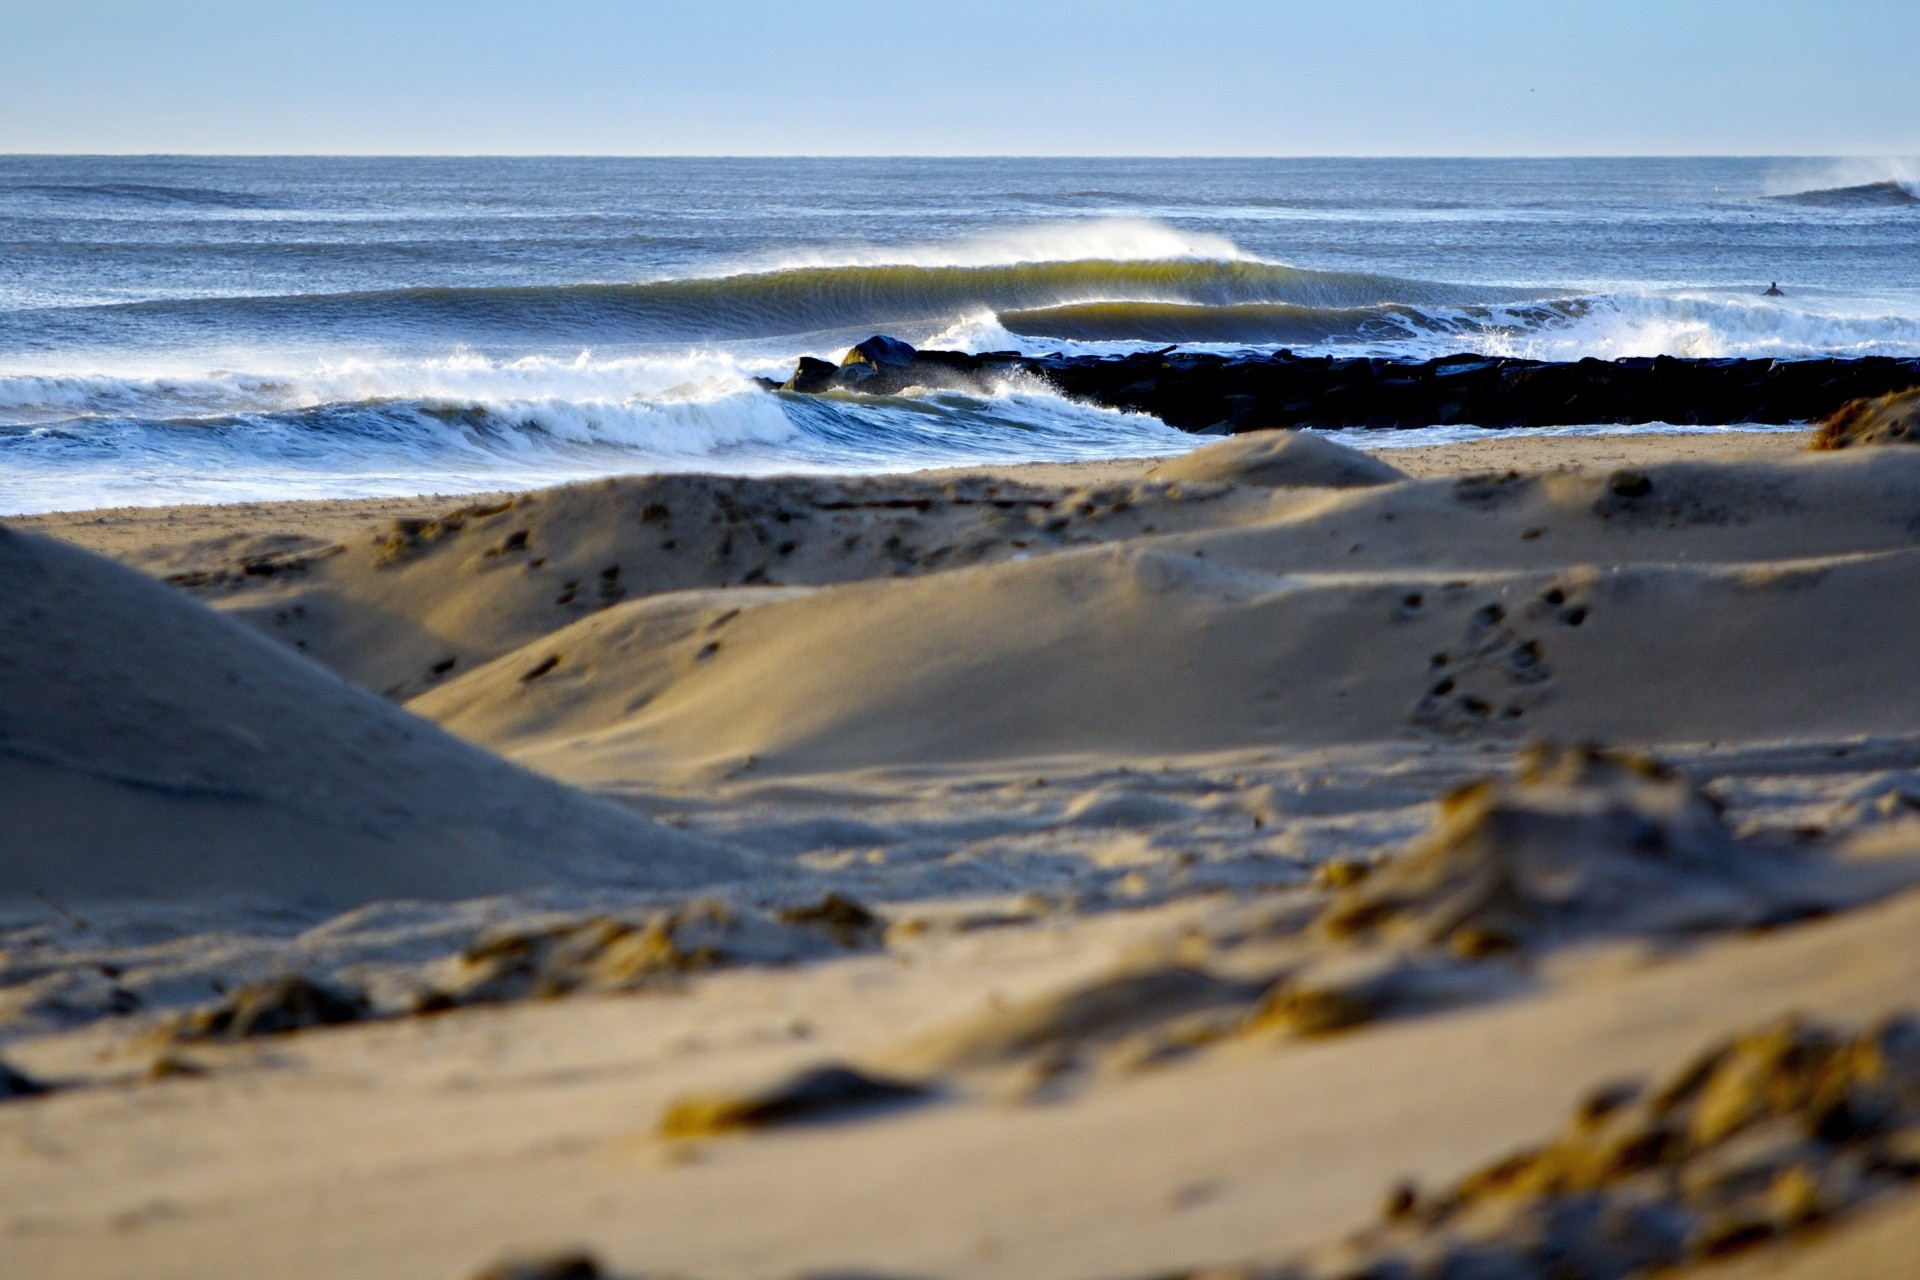 Ben Currie's photo of Manasquan